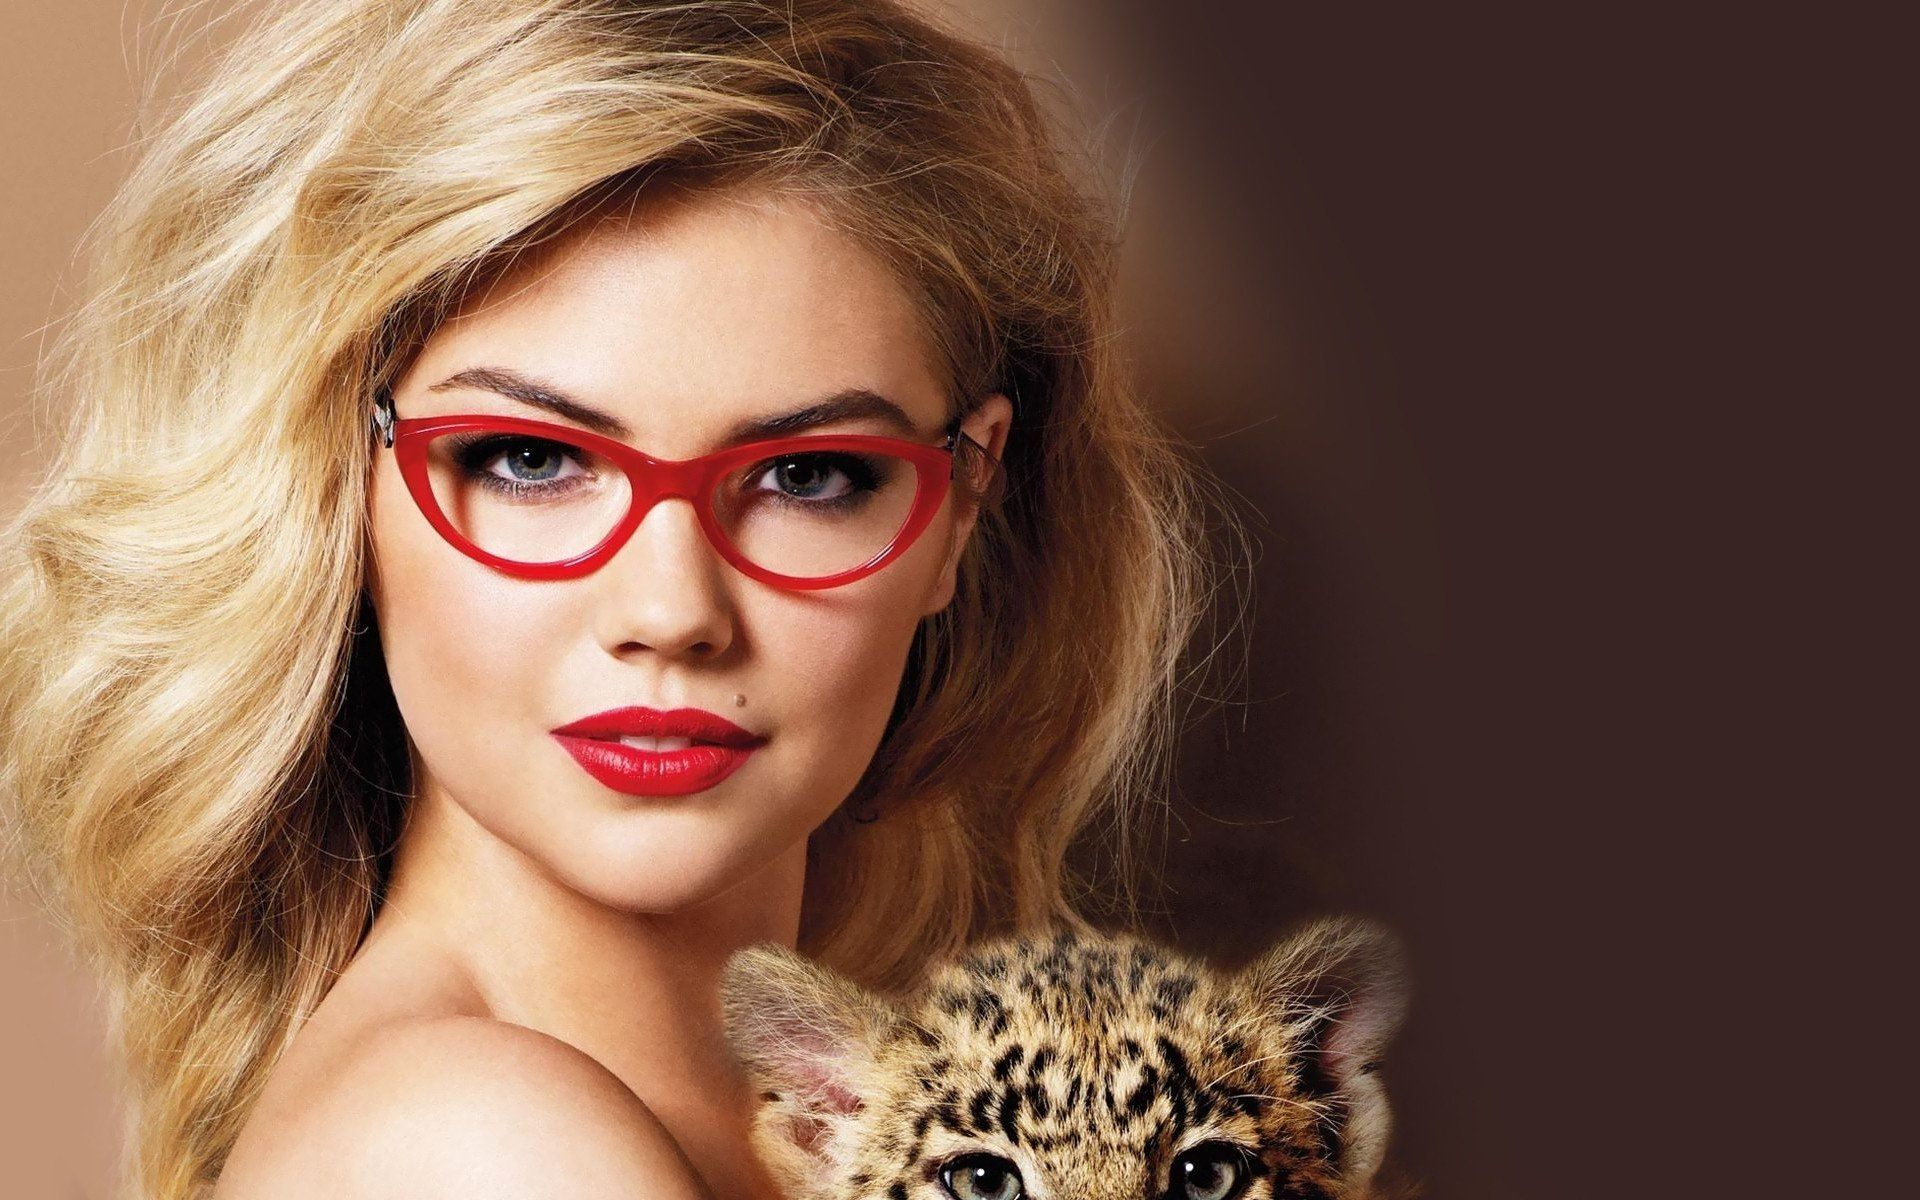 15 Celebs Who Look Super Hot With Glasses